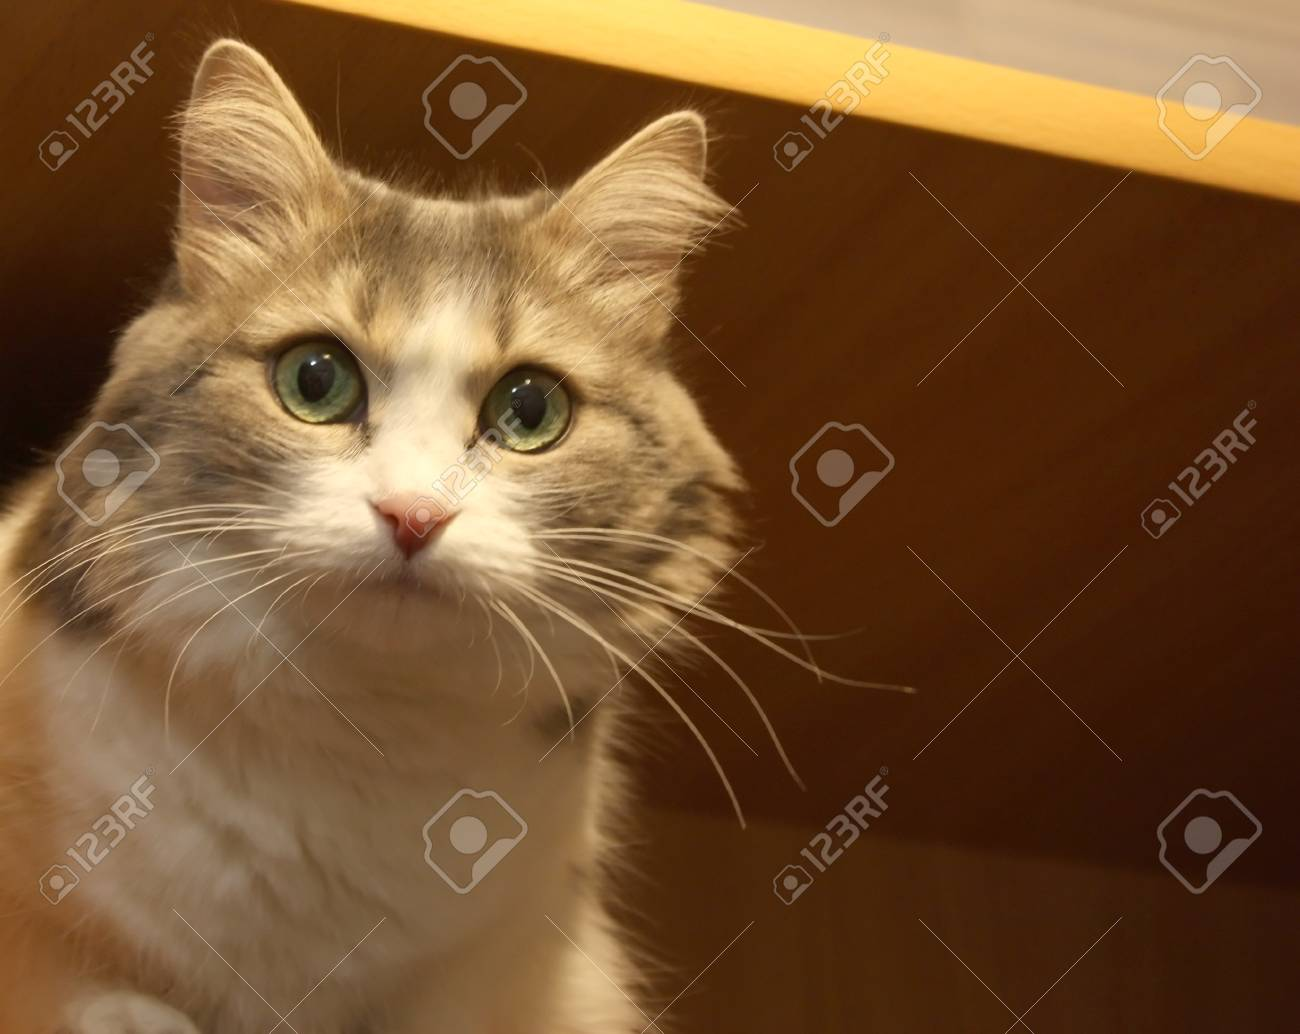 Pretty cat on the blurred background - 29787776